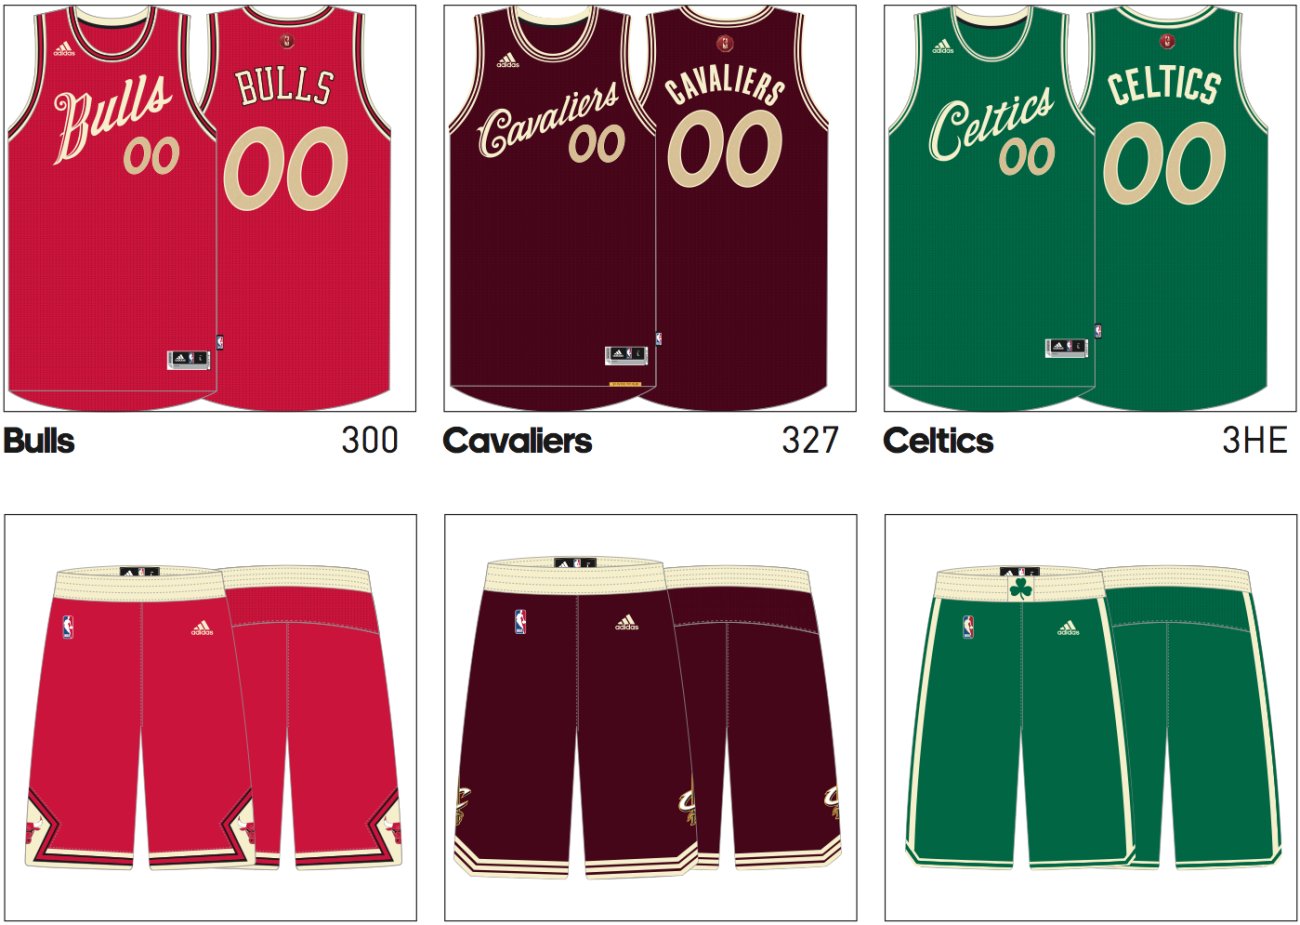 65c52036e666 2015-16 NBA Christmas uniforms bulls cavaliers celtics